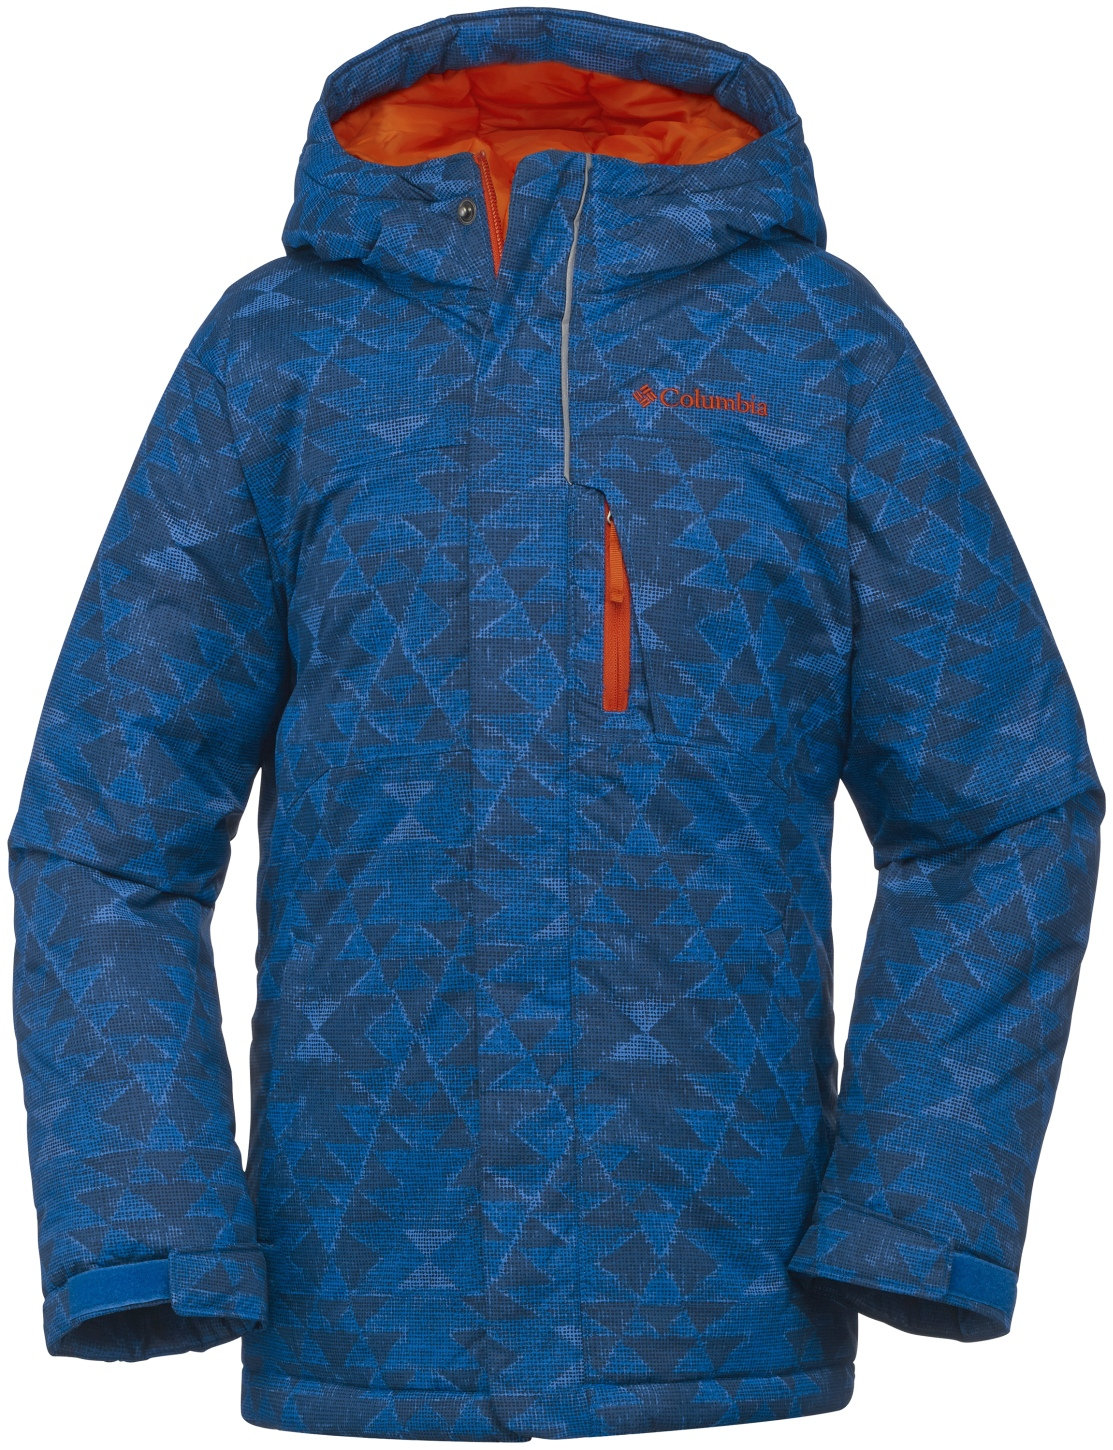 Columbia Boys' Alpine Free Fall Ski Jacket Super Blue Print-30